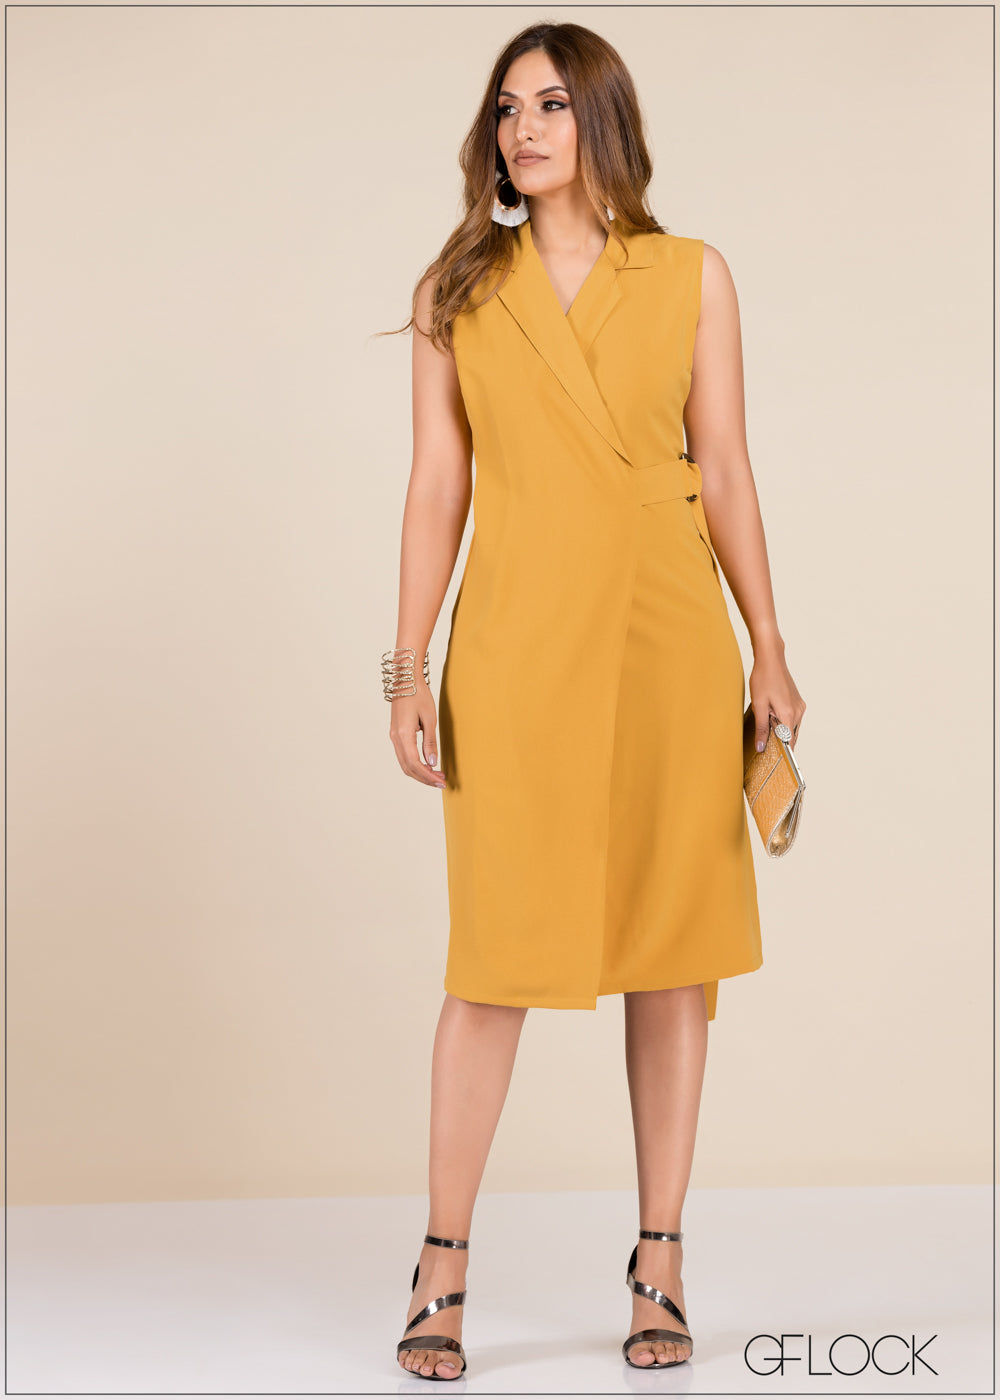 Front Wrap Detail Dress - GFLOCK.LK